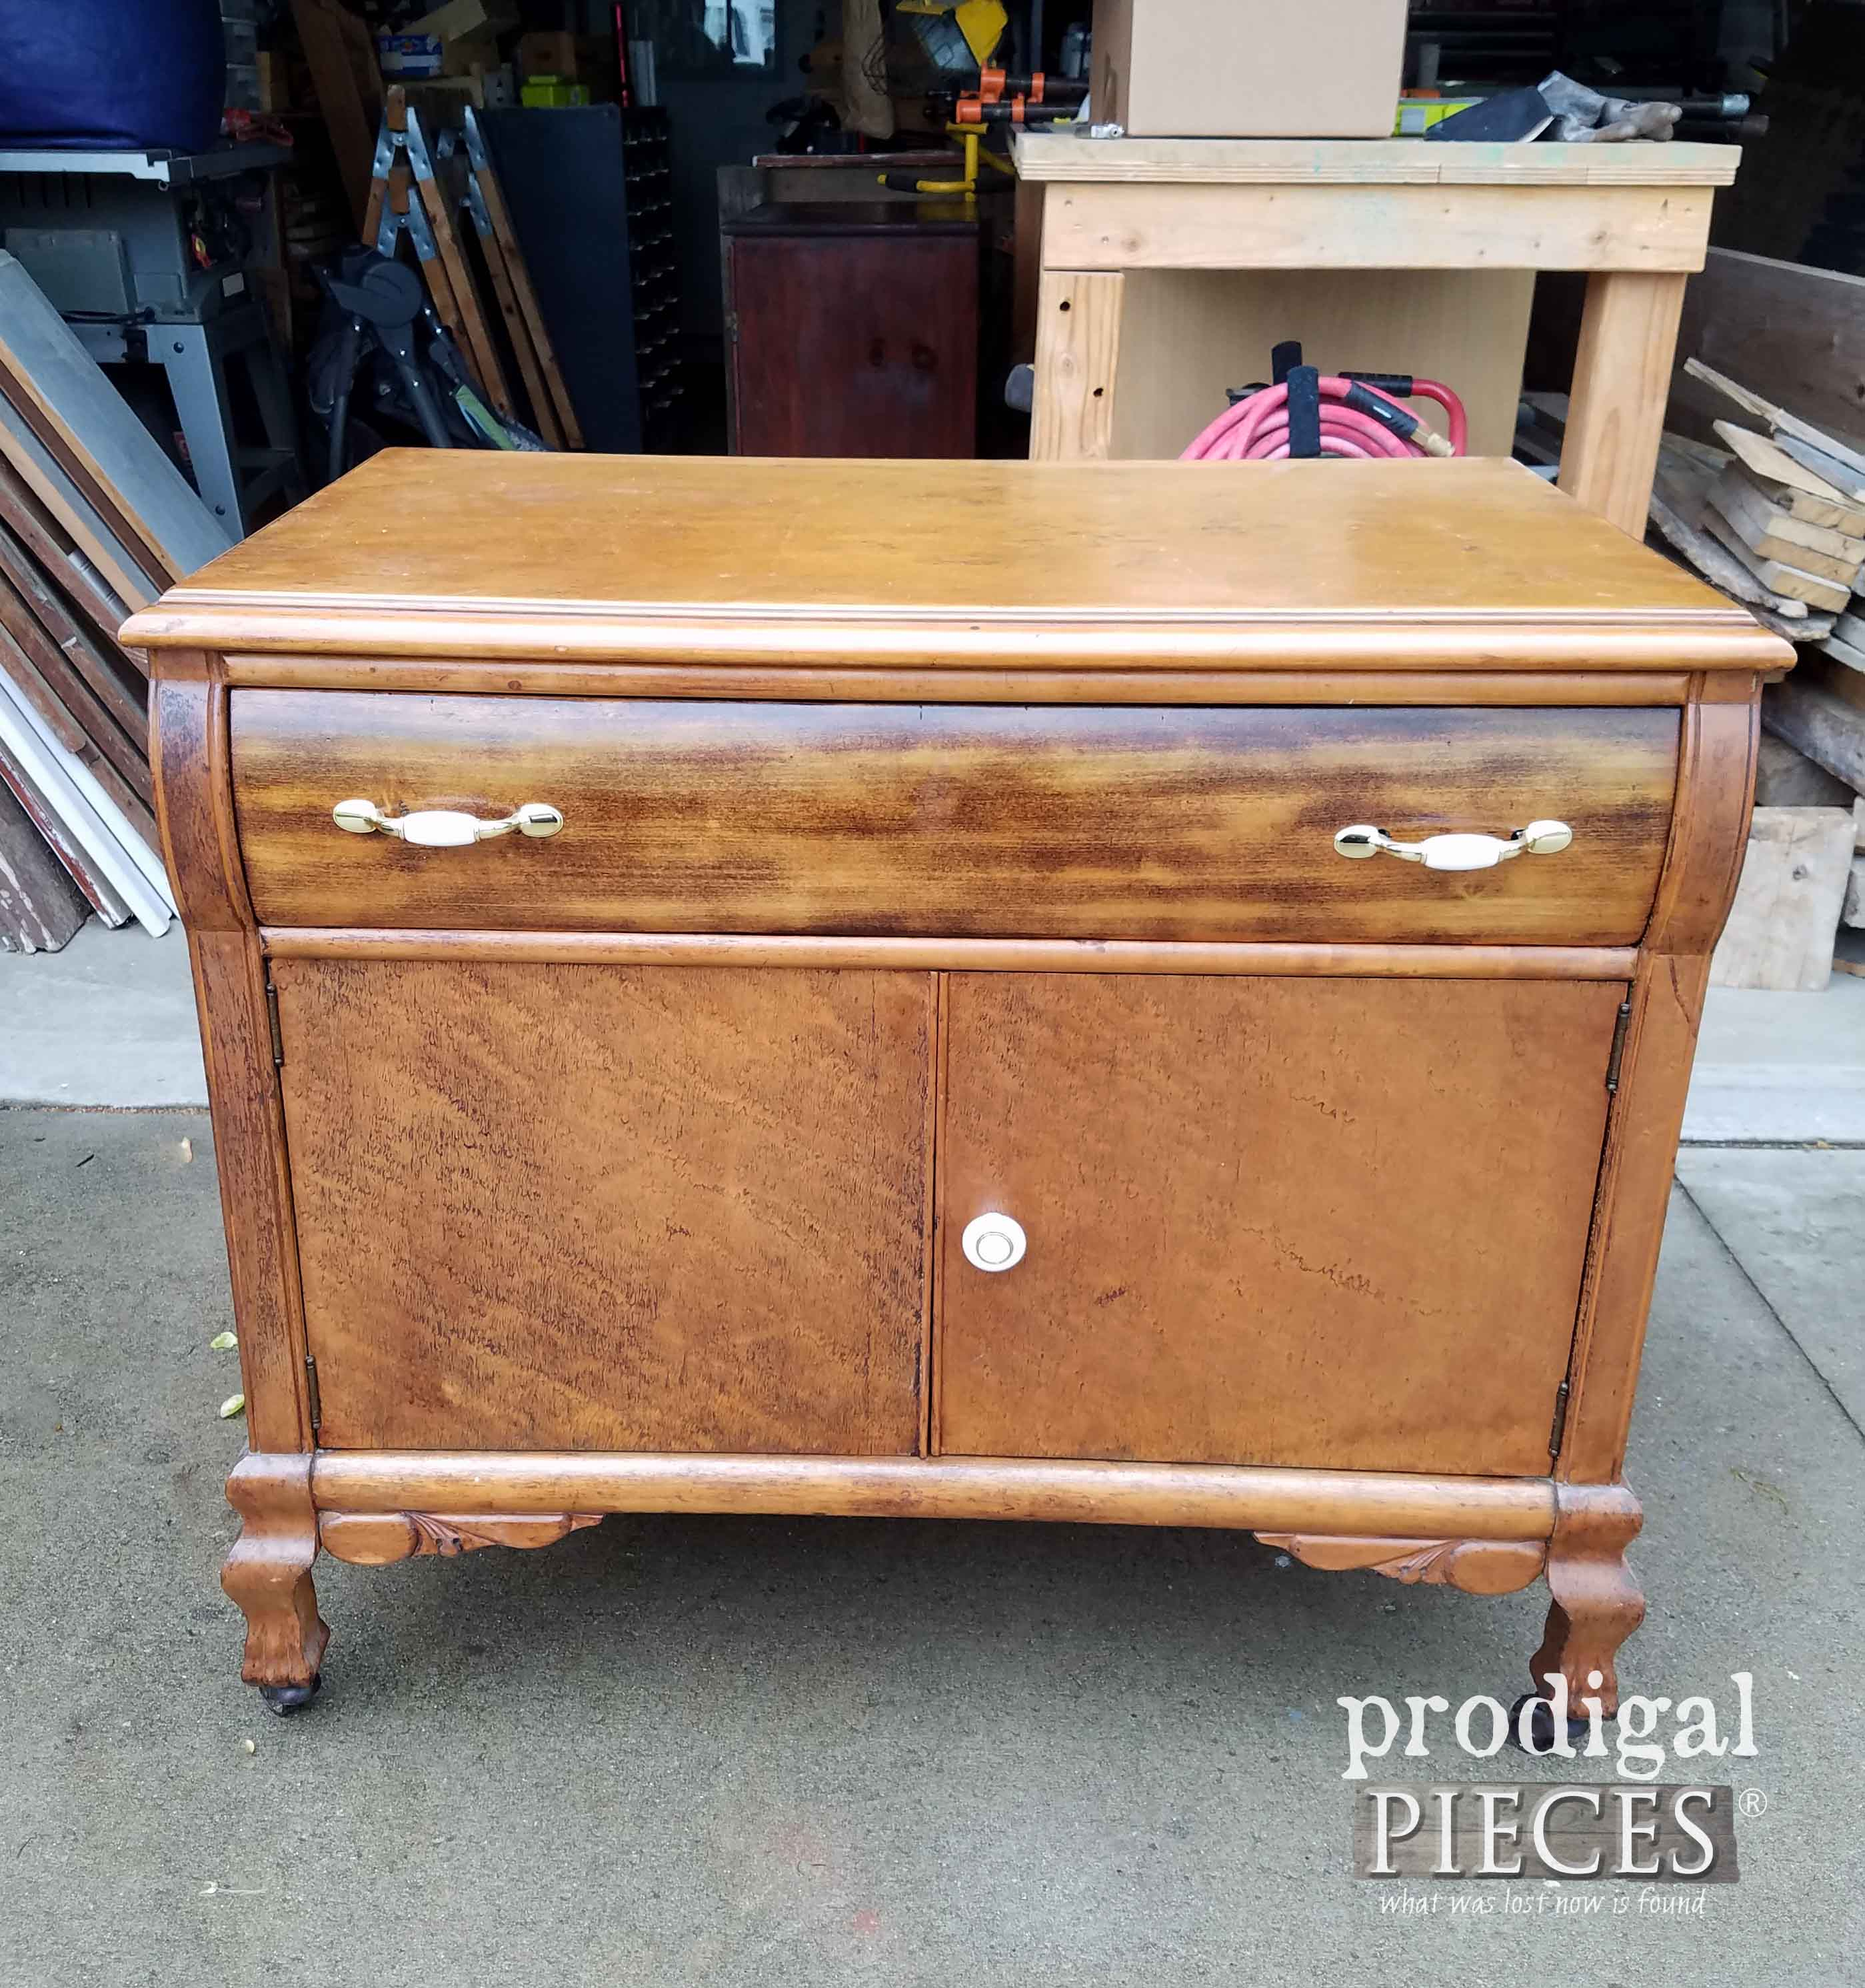 Vintage Chest Before Makeover | Prodigal Pieces | prodigalpieces.com